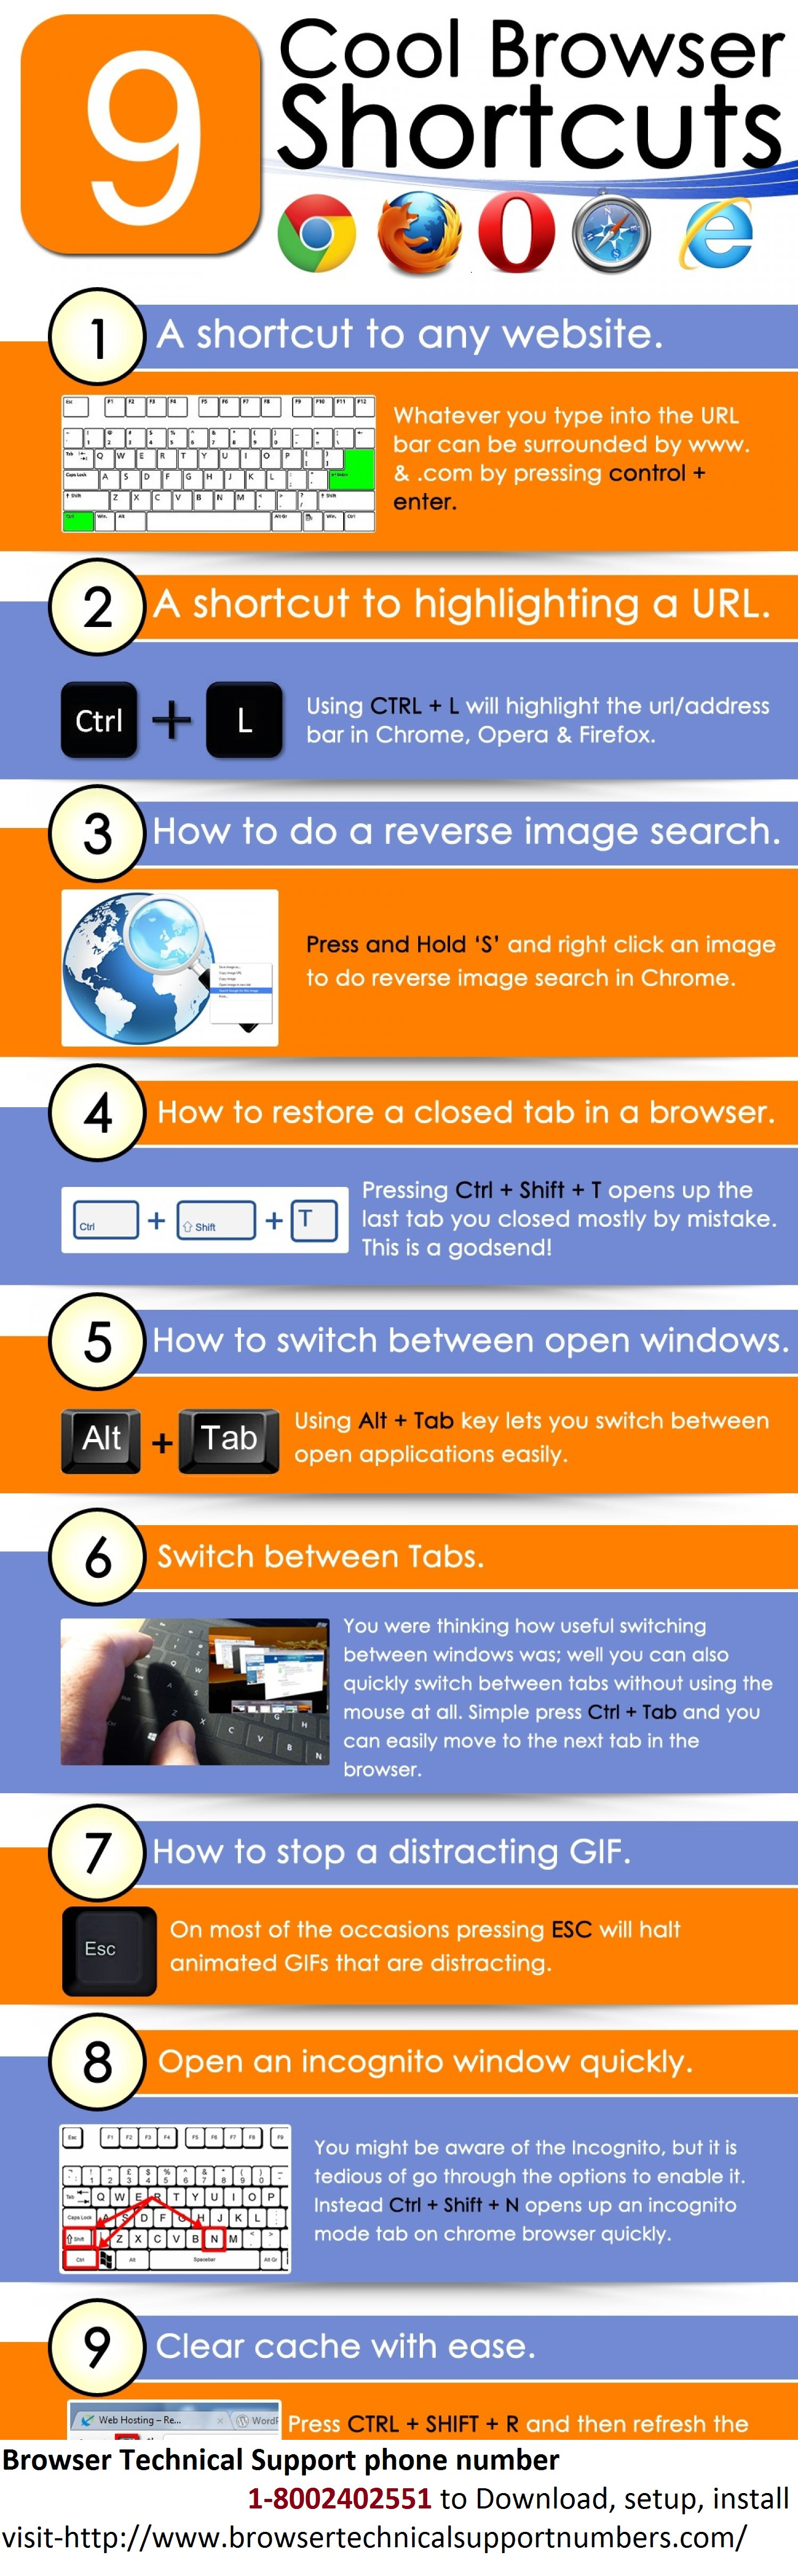 9 cool Browser Shortcuts coall 1-8002402551 technical support number Infographic